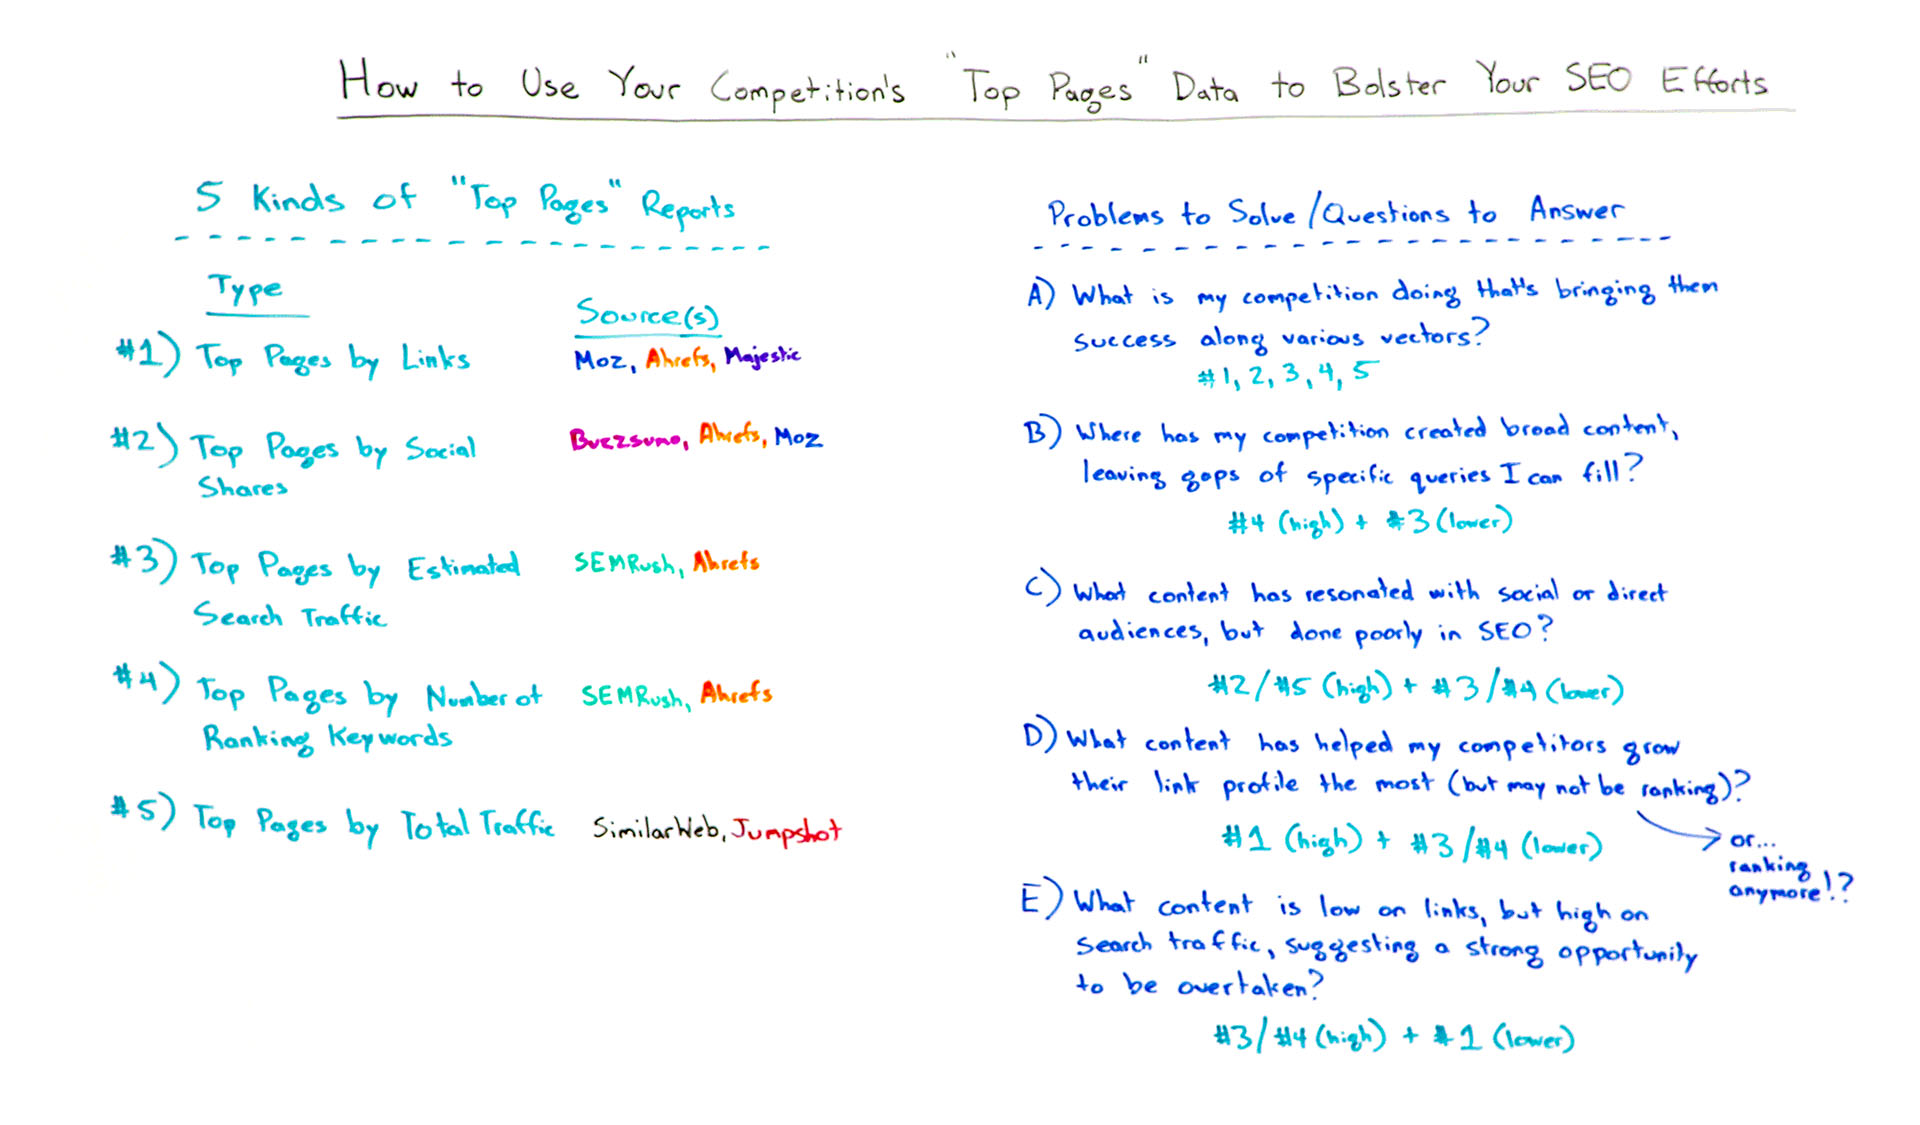 Use your competition's top pages data to bolster your SEO efforts